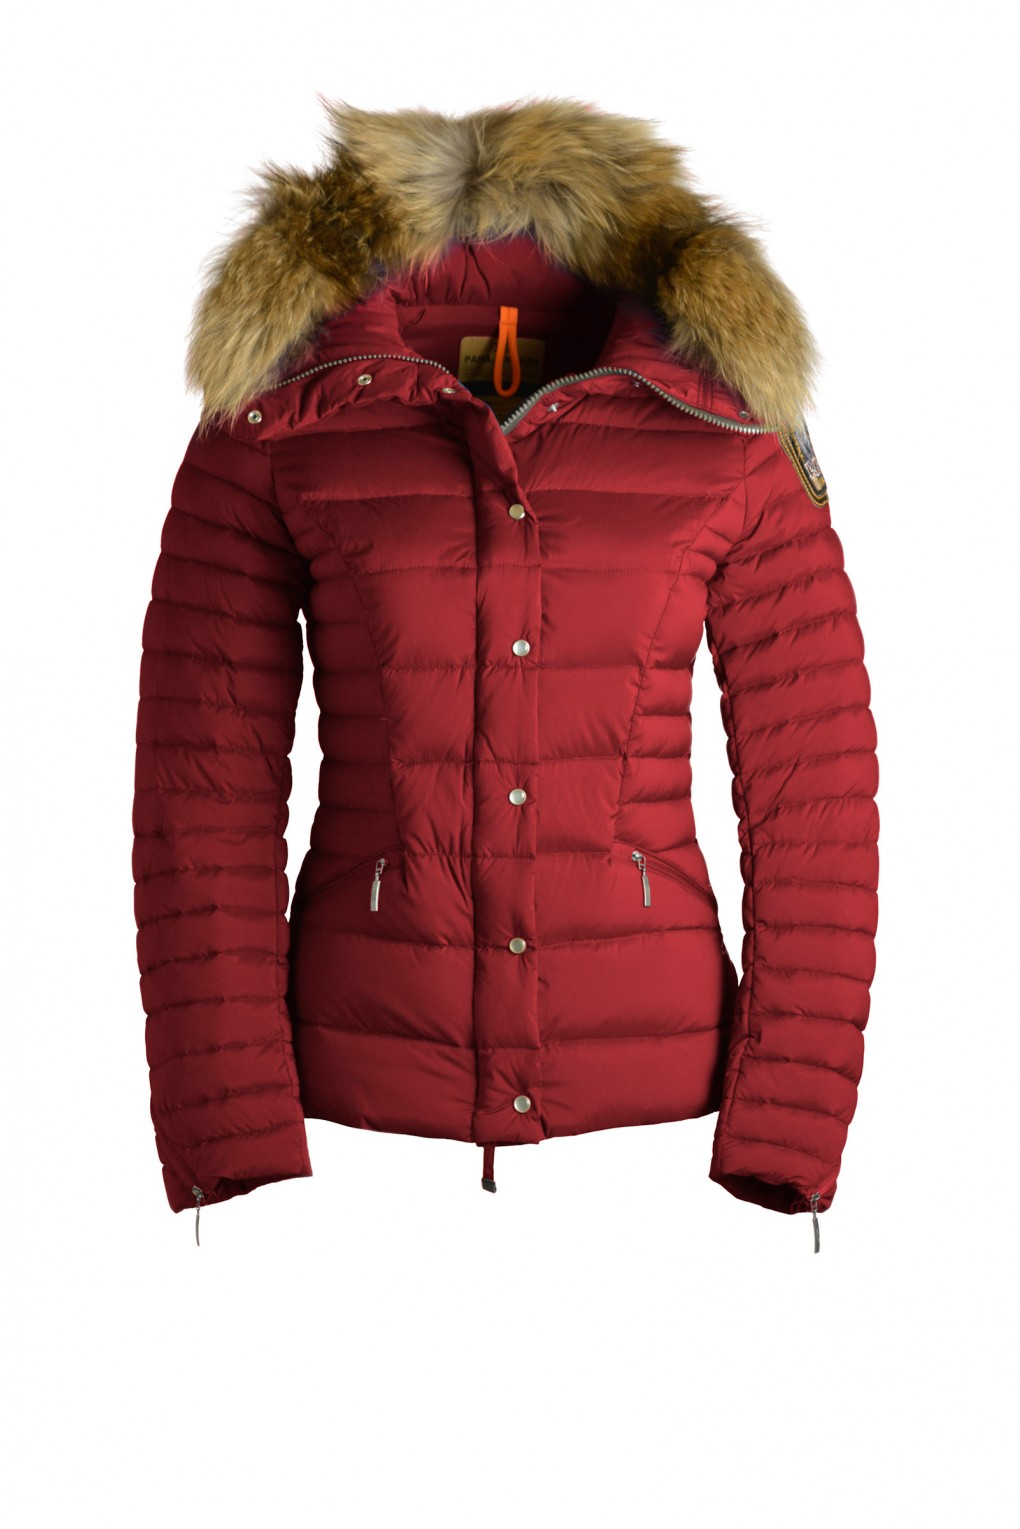 parajumpers MARLENE woman outerwear Red